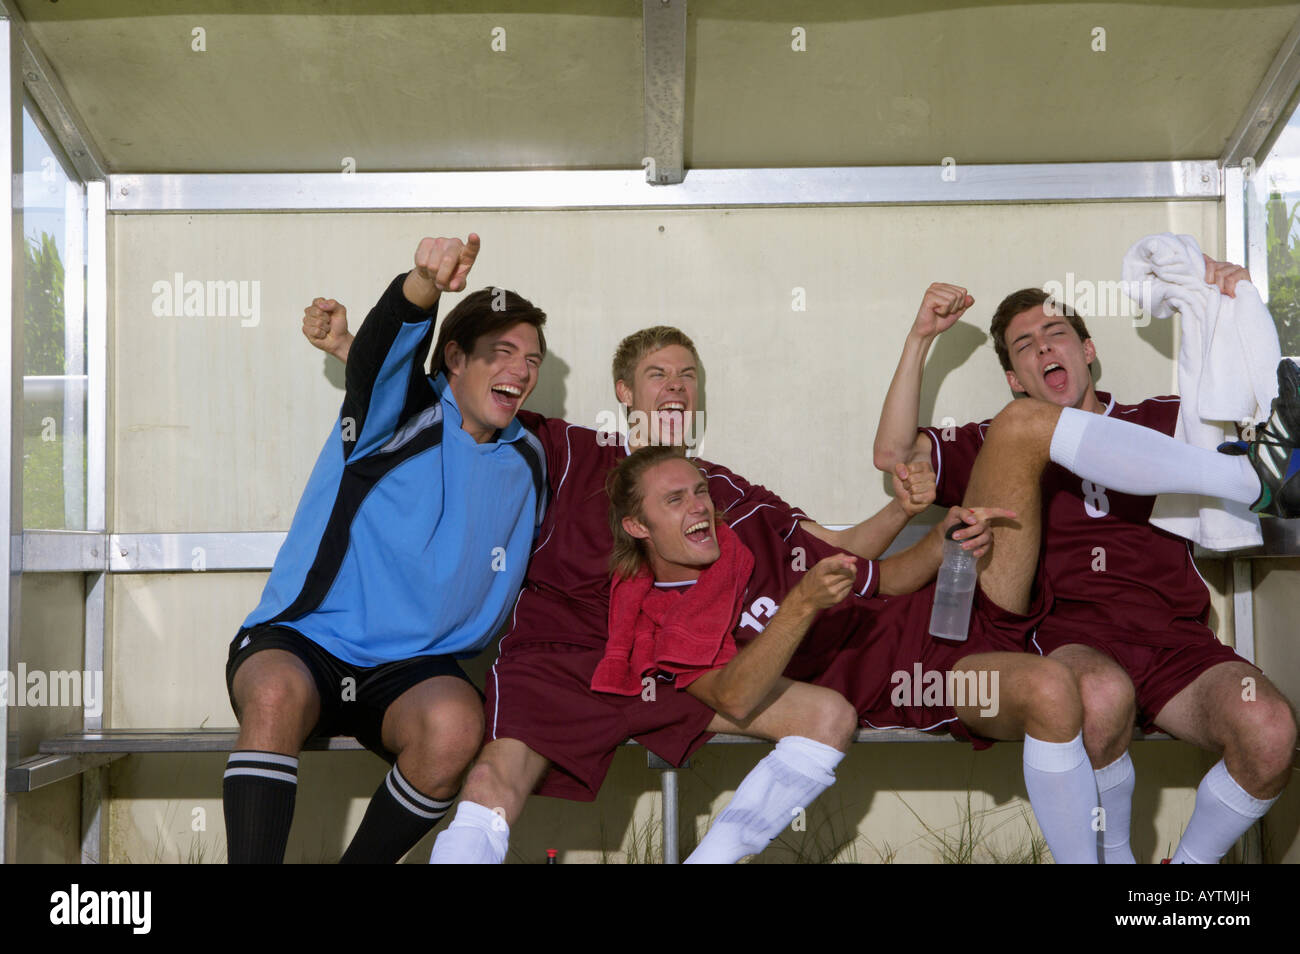 Cheering kickers sitting on substitutes' bench - Stock Image